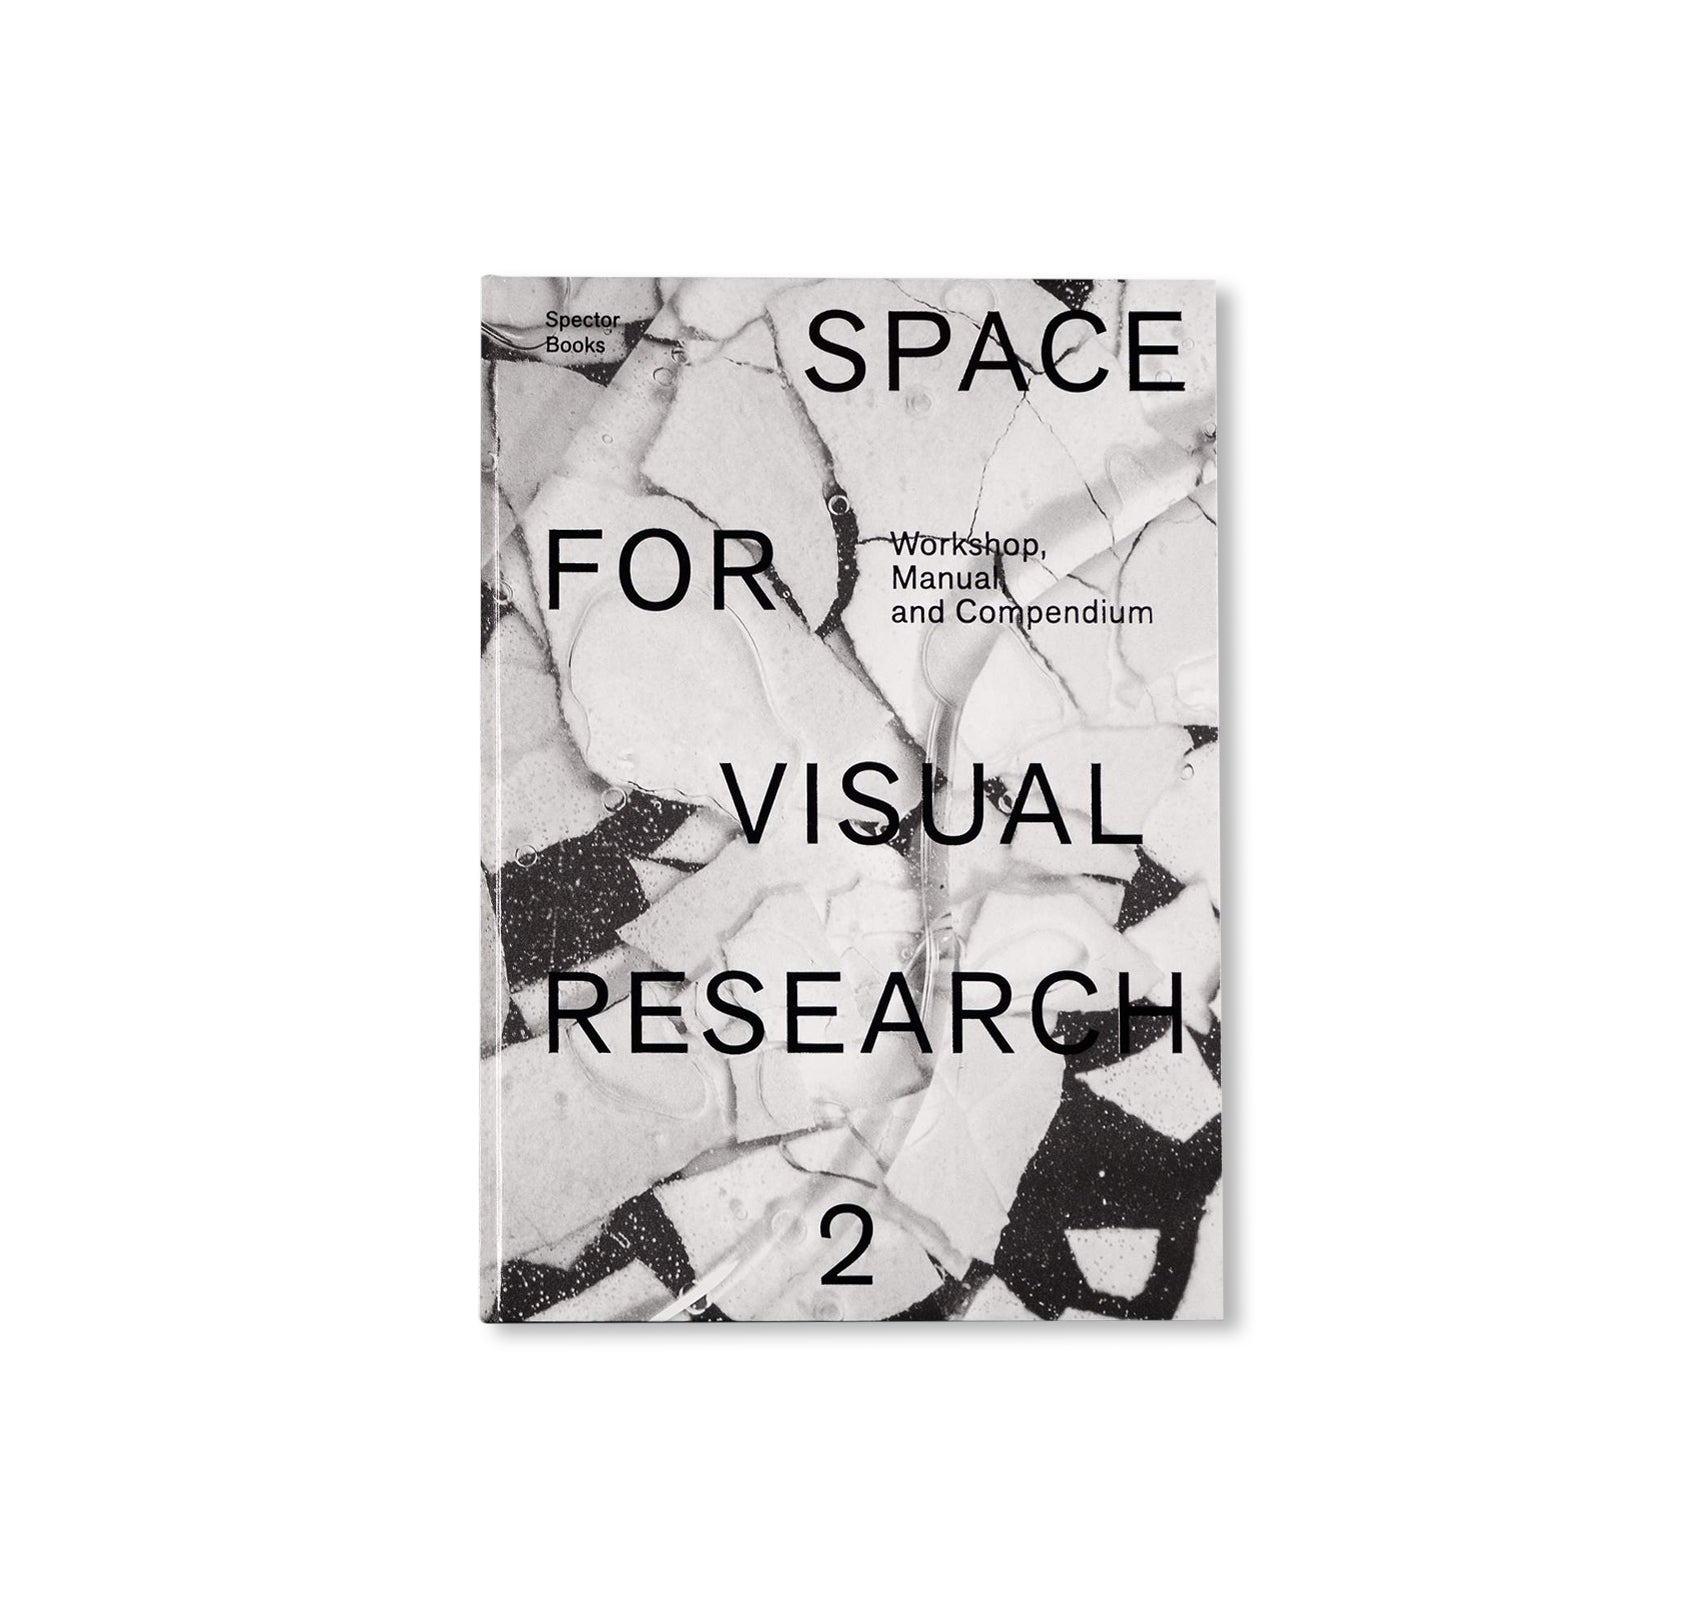 SPACE FOR VISUAL RESEARCH 2 - WORKSHOP, MANUAL AND COMPENDIUM